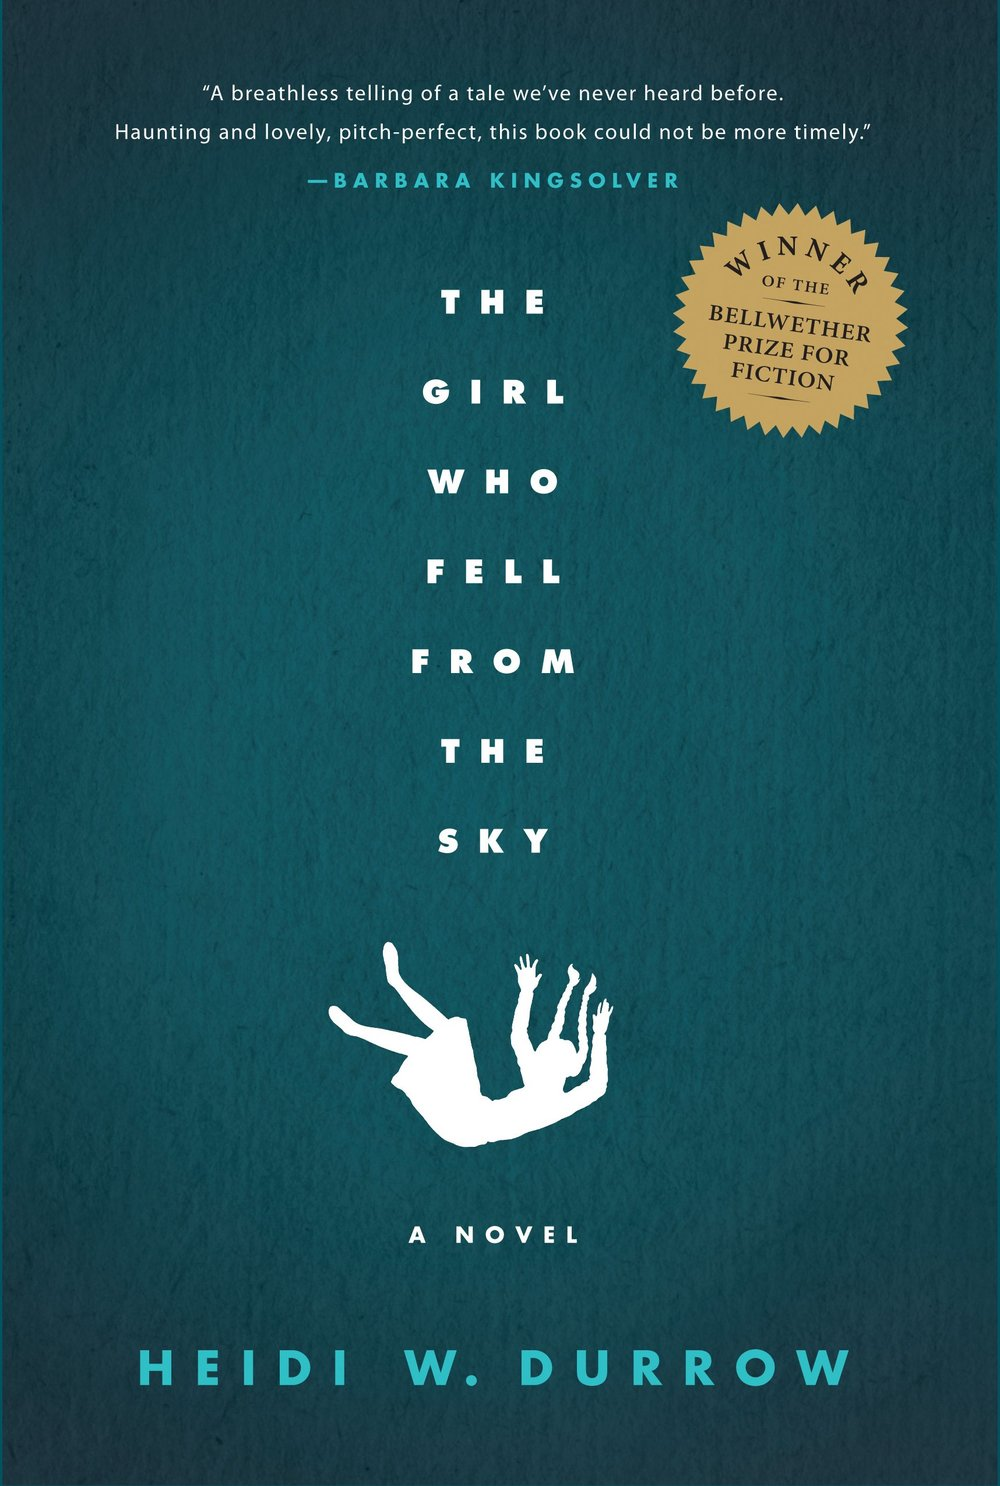 Judge a Book By Its Cover - Book Jacket Designs by Connie Gabbert